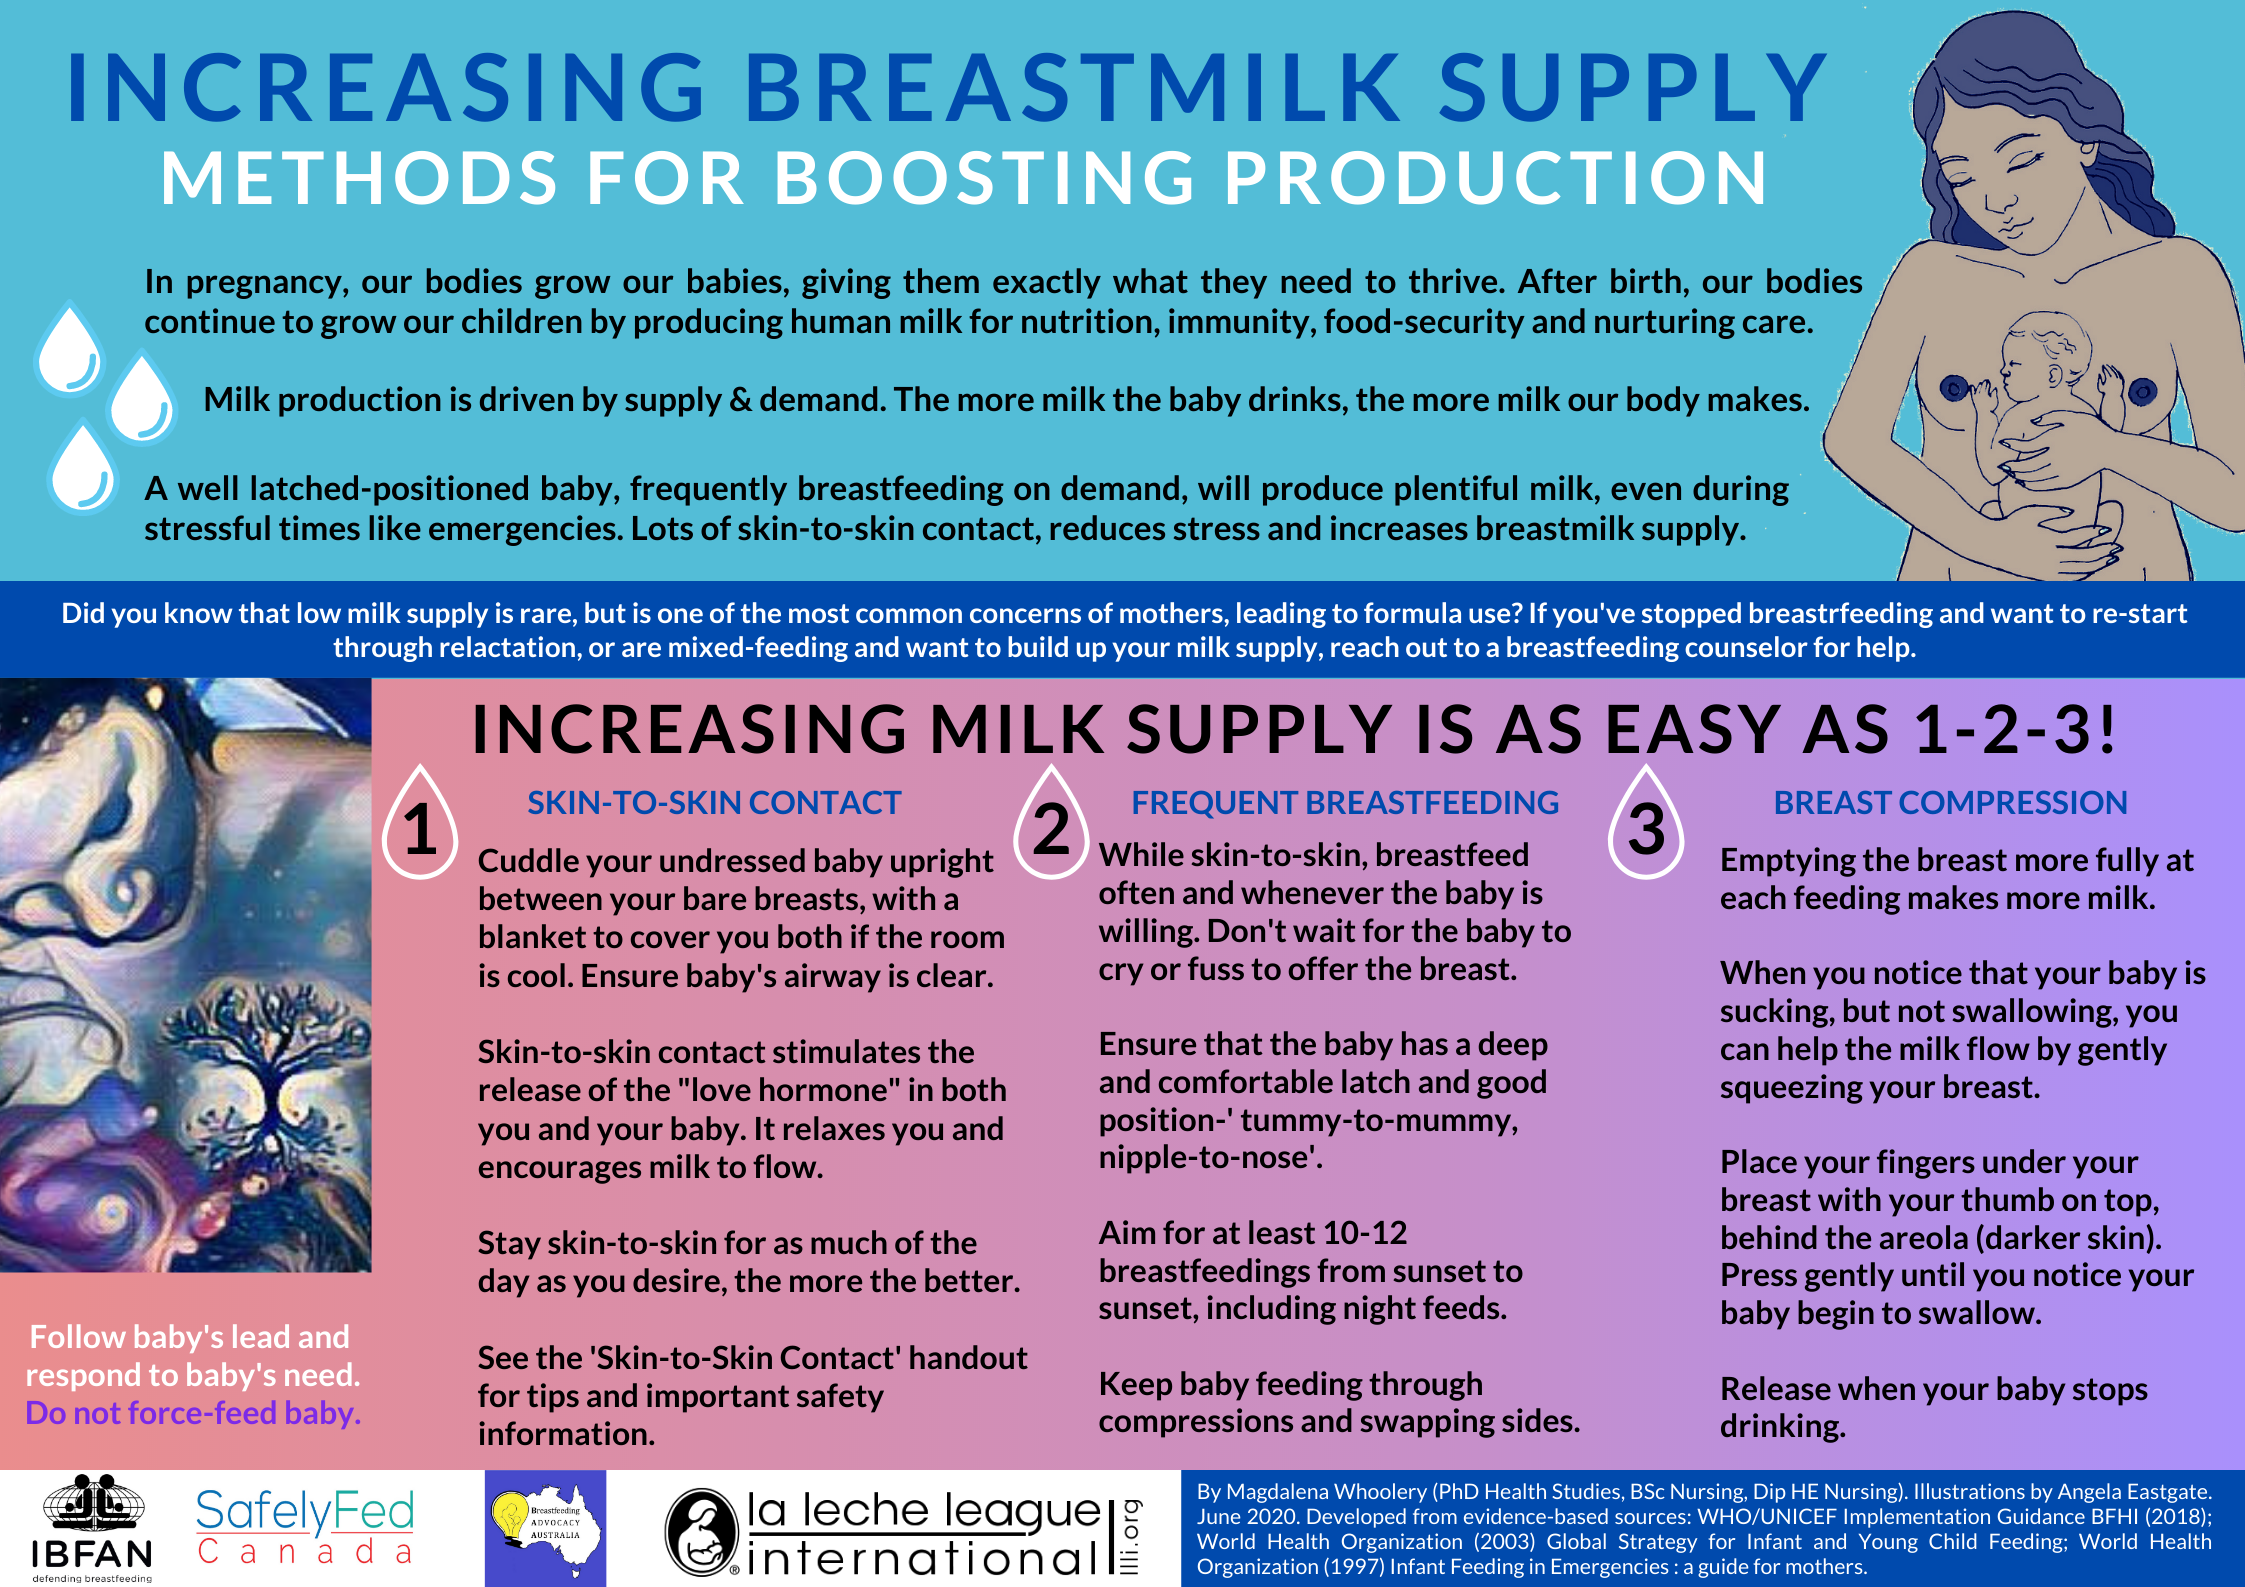 poster detailing steps to increase milk supply